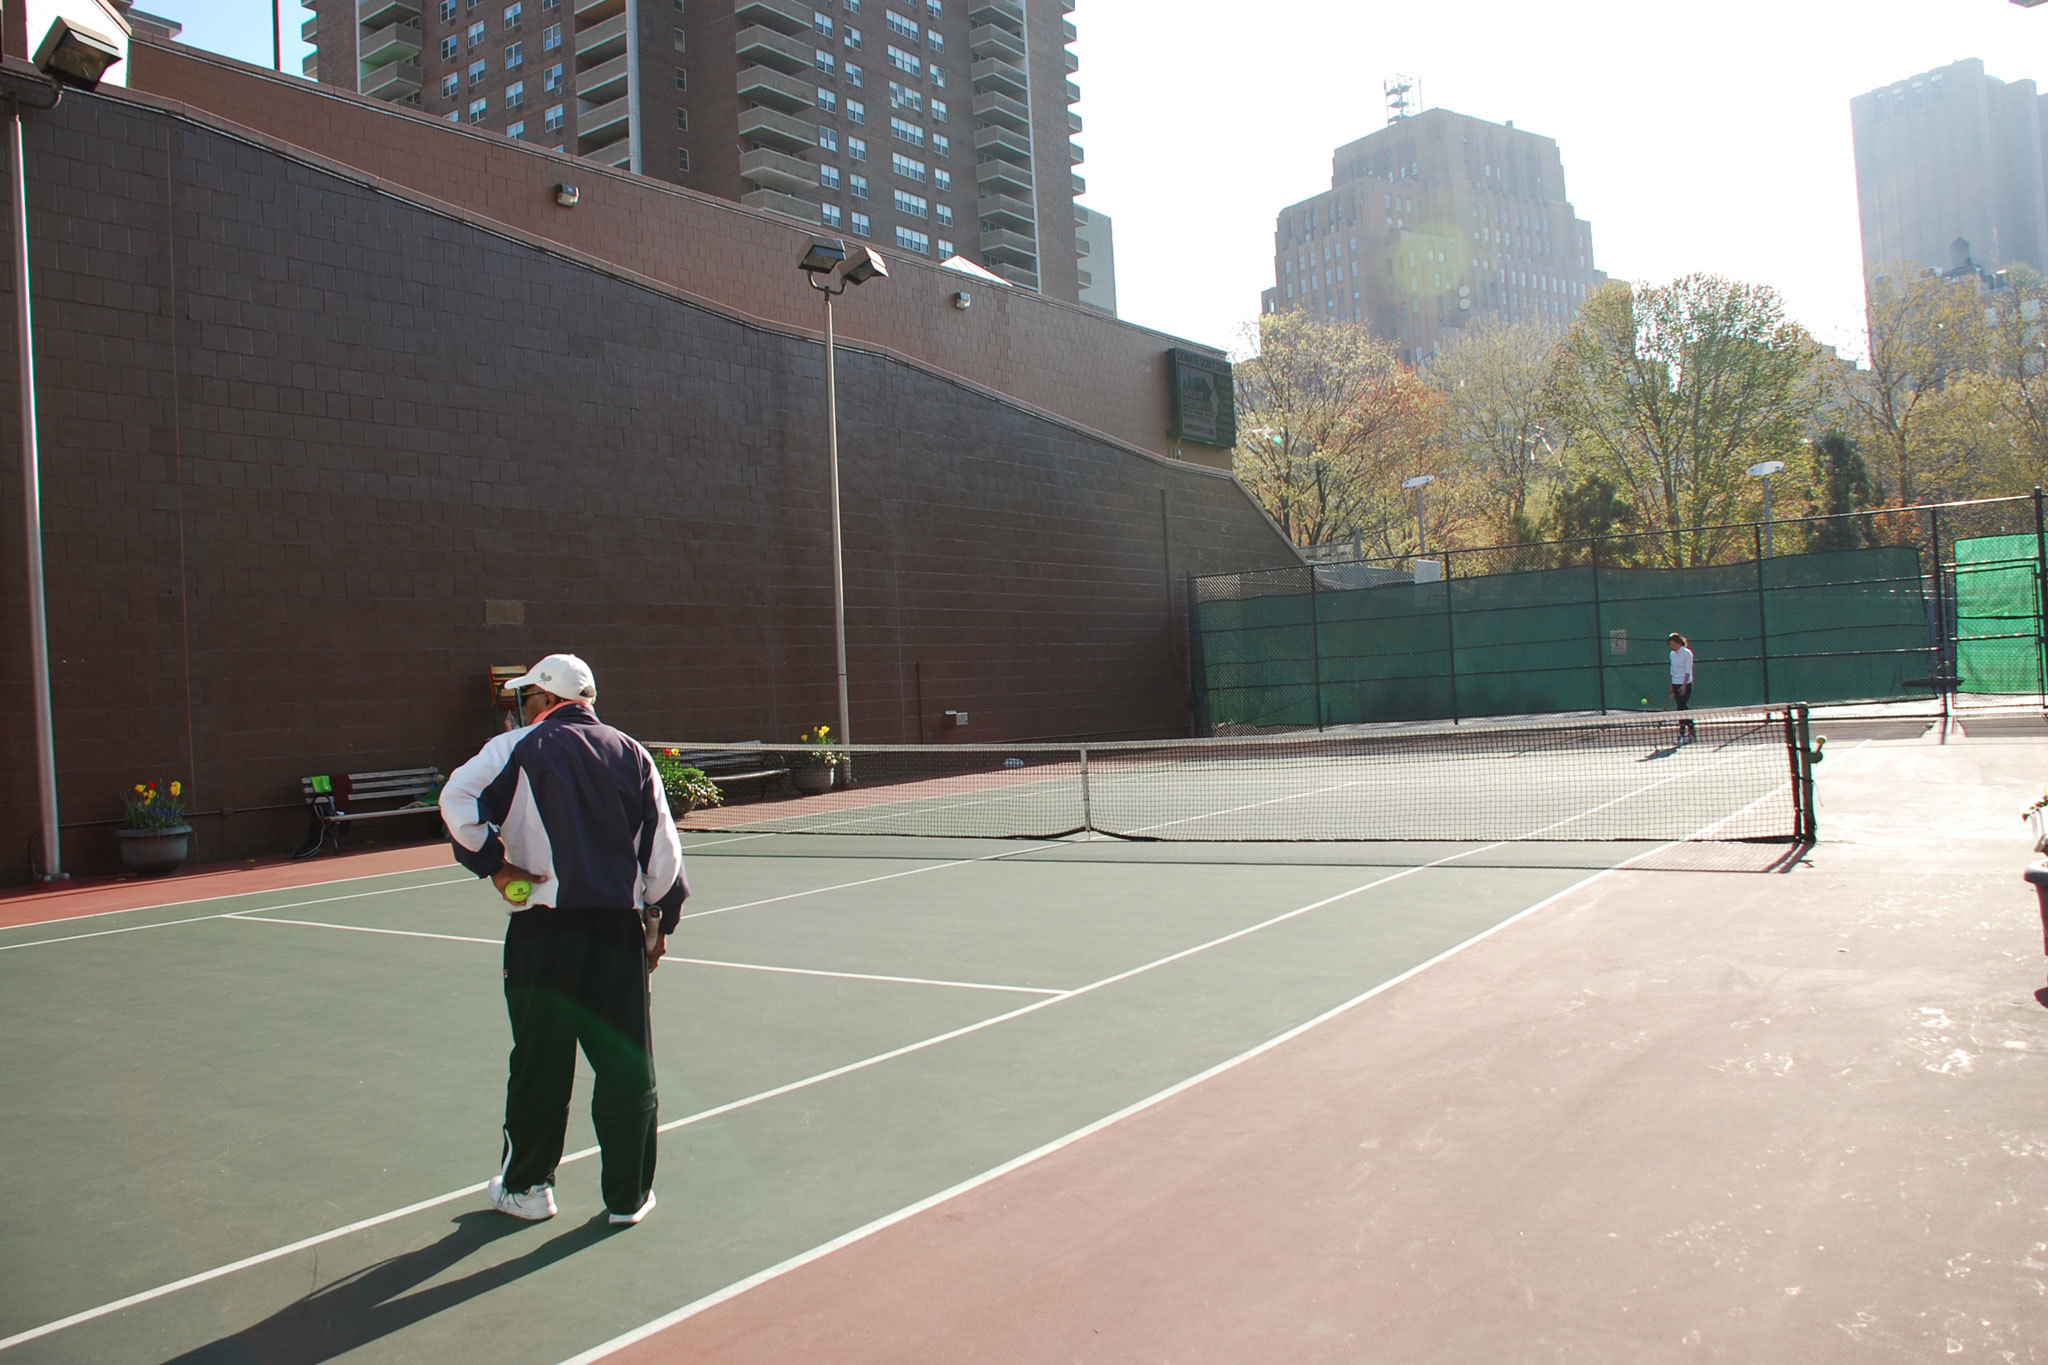 Best tennis courts in NYC: Where to play tennis outdoors